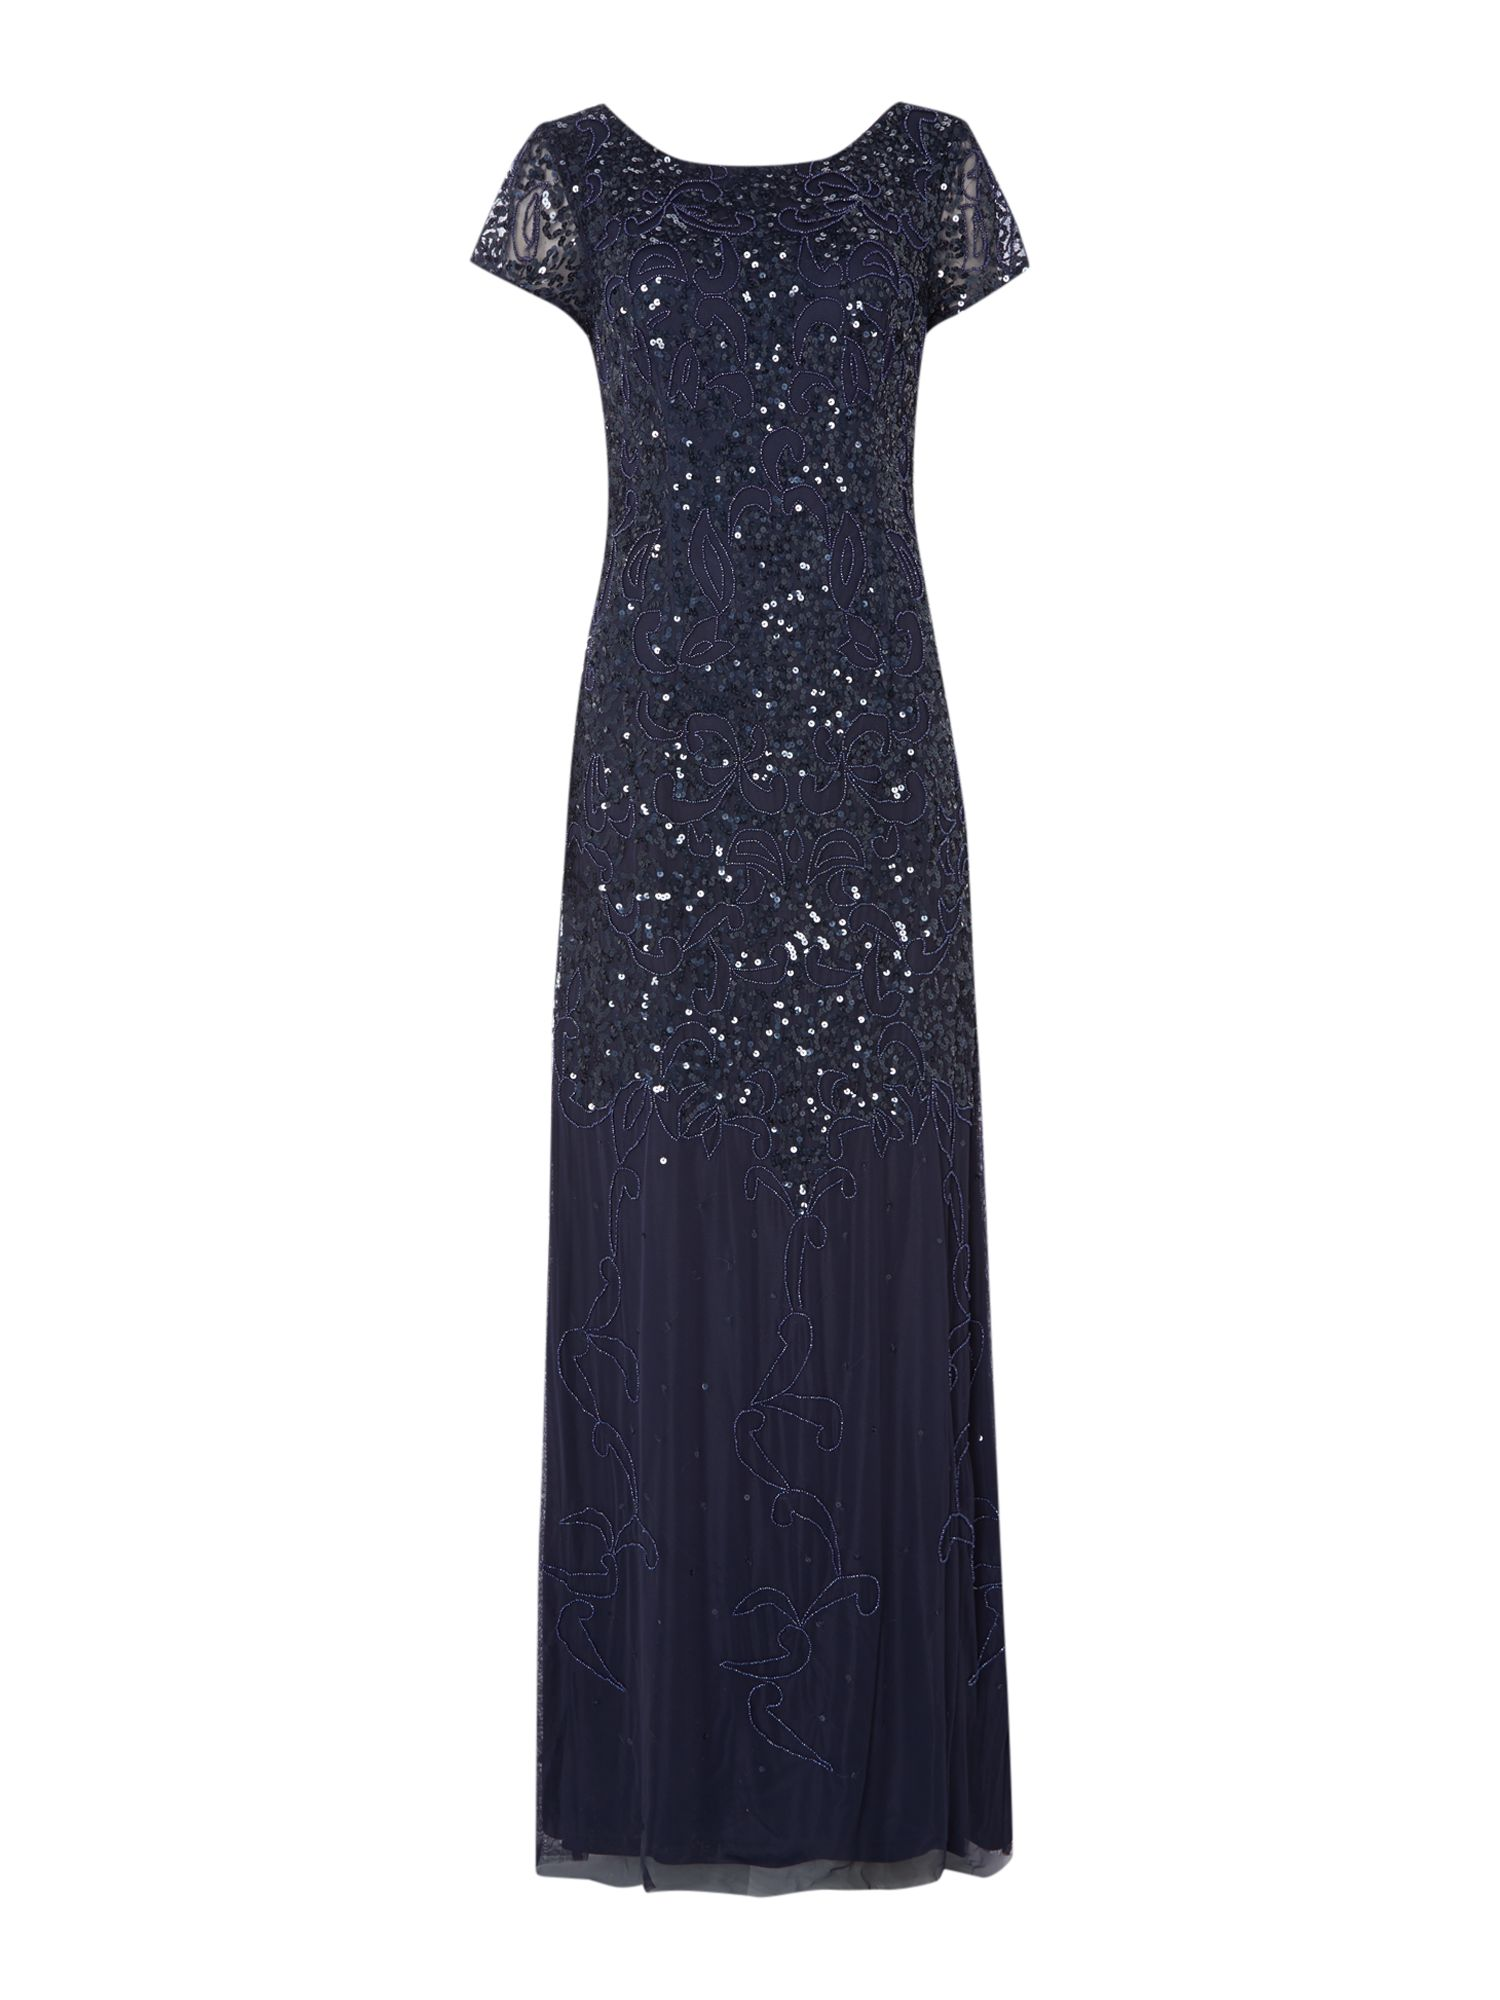 Adrianna Papell 34 sleeve beaded gown $175.00 AT vintagedancer.com